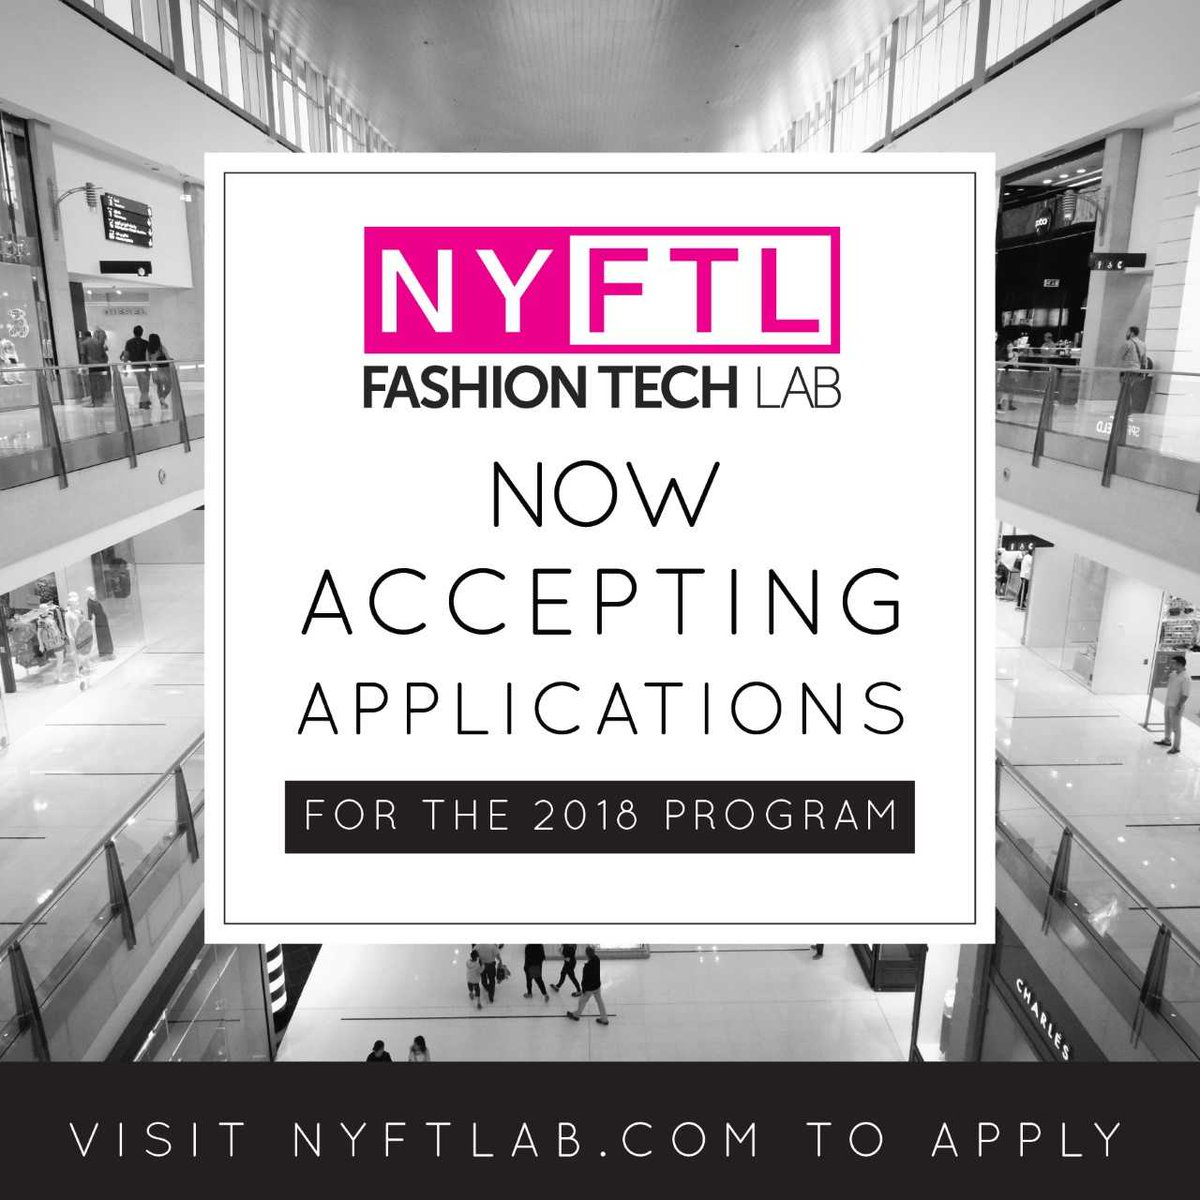 INNOVATING AT THE INTERSECTION OF FASHION, RETAIL, AND TECHNOLOGY    2018 APPLICATIONS ARE NOW OPEN!   @NYFTLab is seeking top women led #fashion tech innovators   To apply  http://www. nyftlab.com  &nbsp;     #FemaleFounders #fashiontech #womenintech #innovation #nonprofit <br>http://pic.twitter.com/rSYTd1aXlP